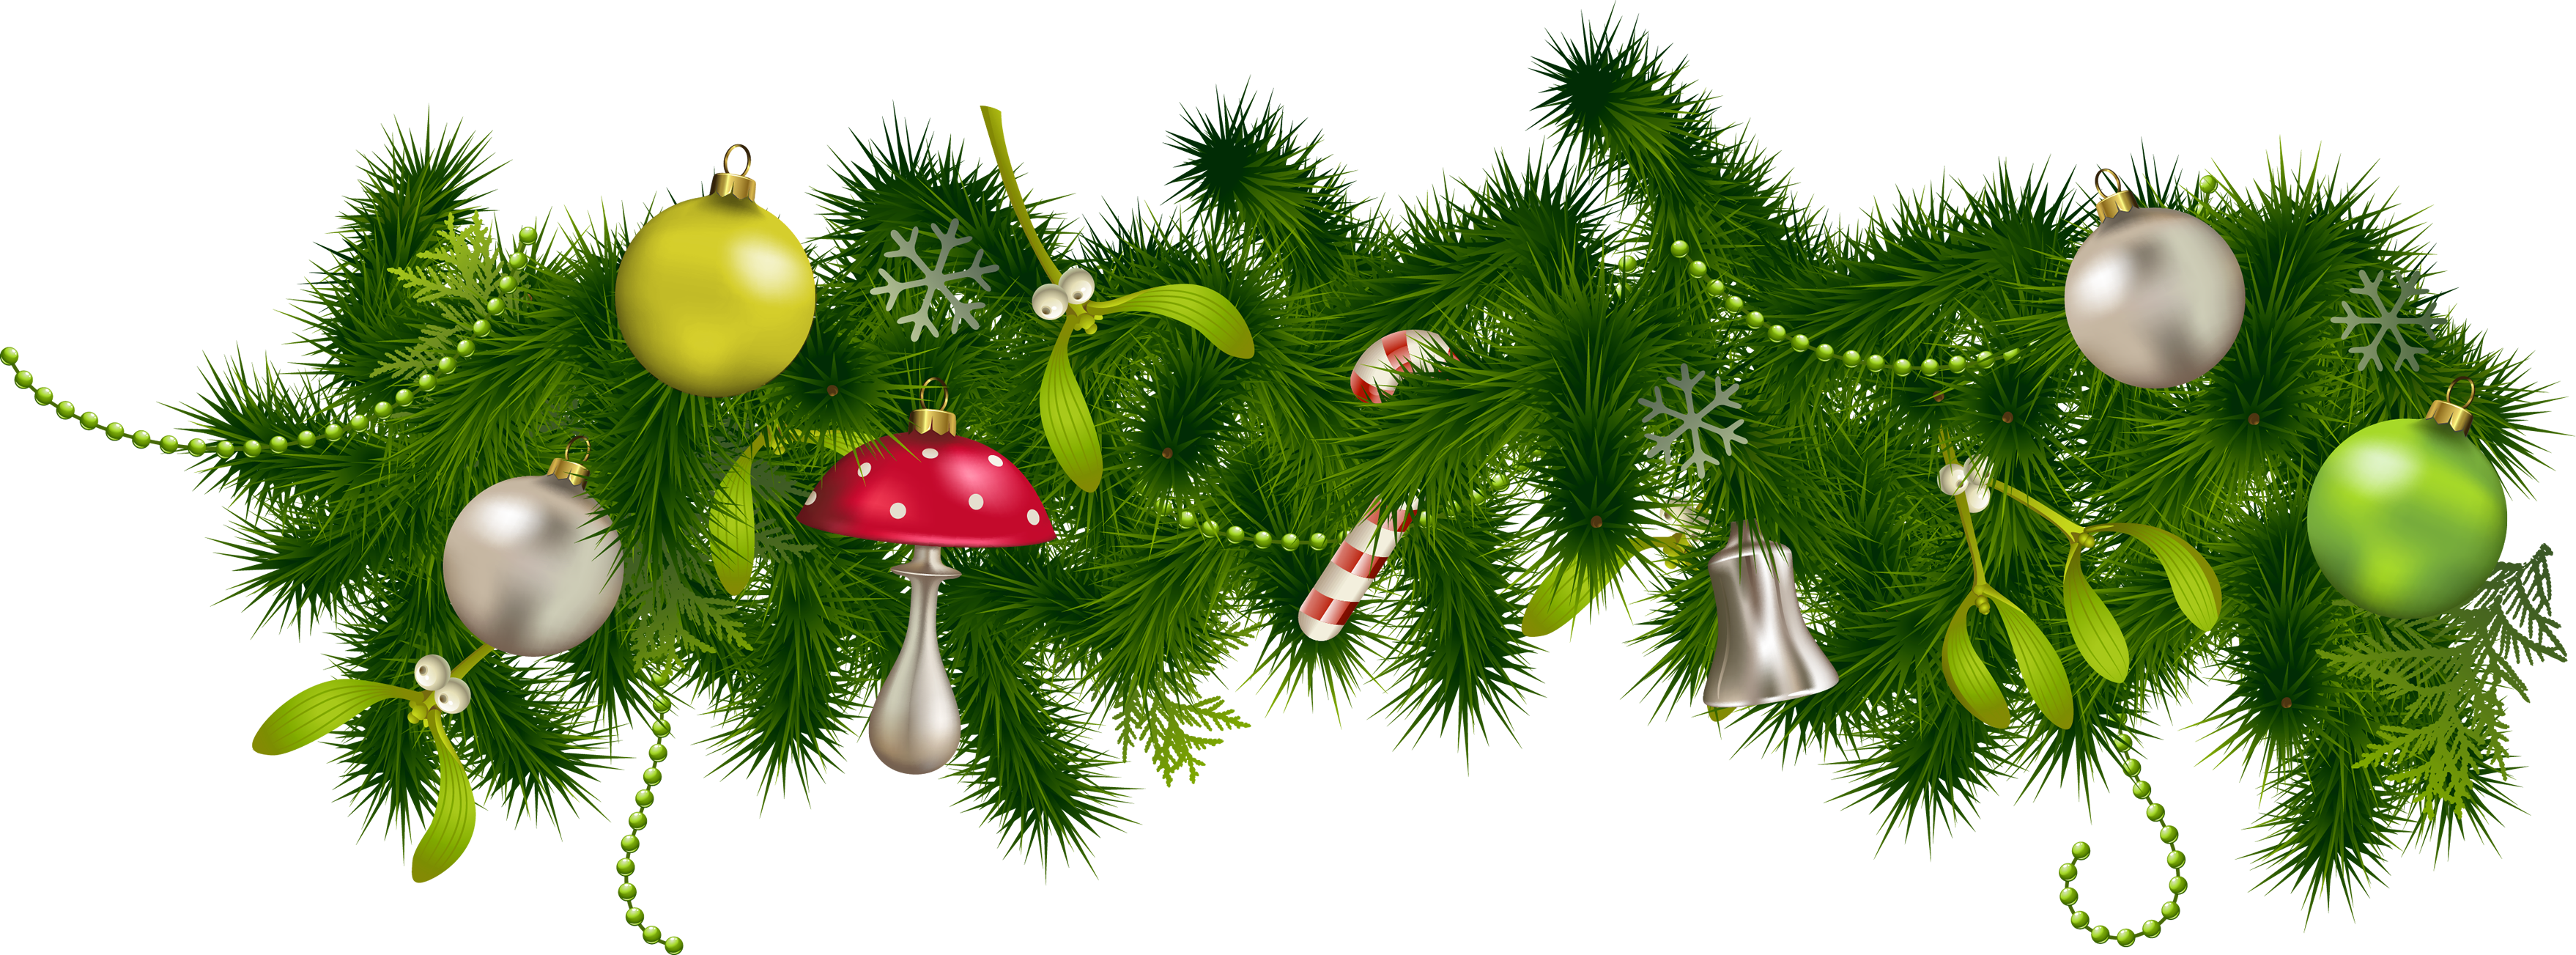 Christmas greenery png. Images download decoration